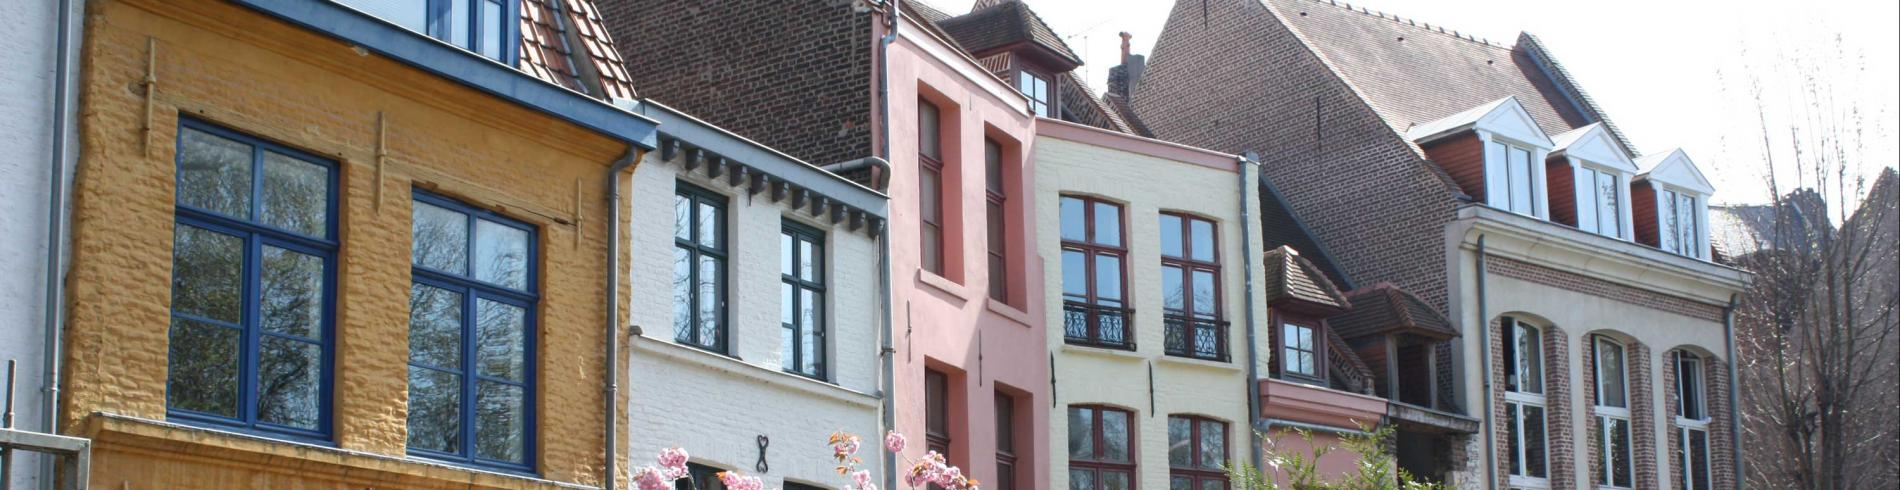 Pretty Flemish style houses with a cherry blossom in front